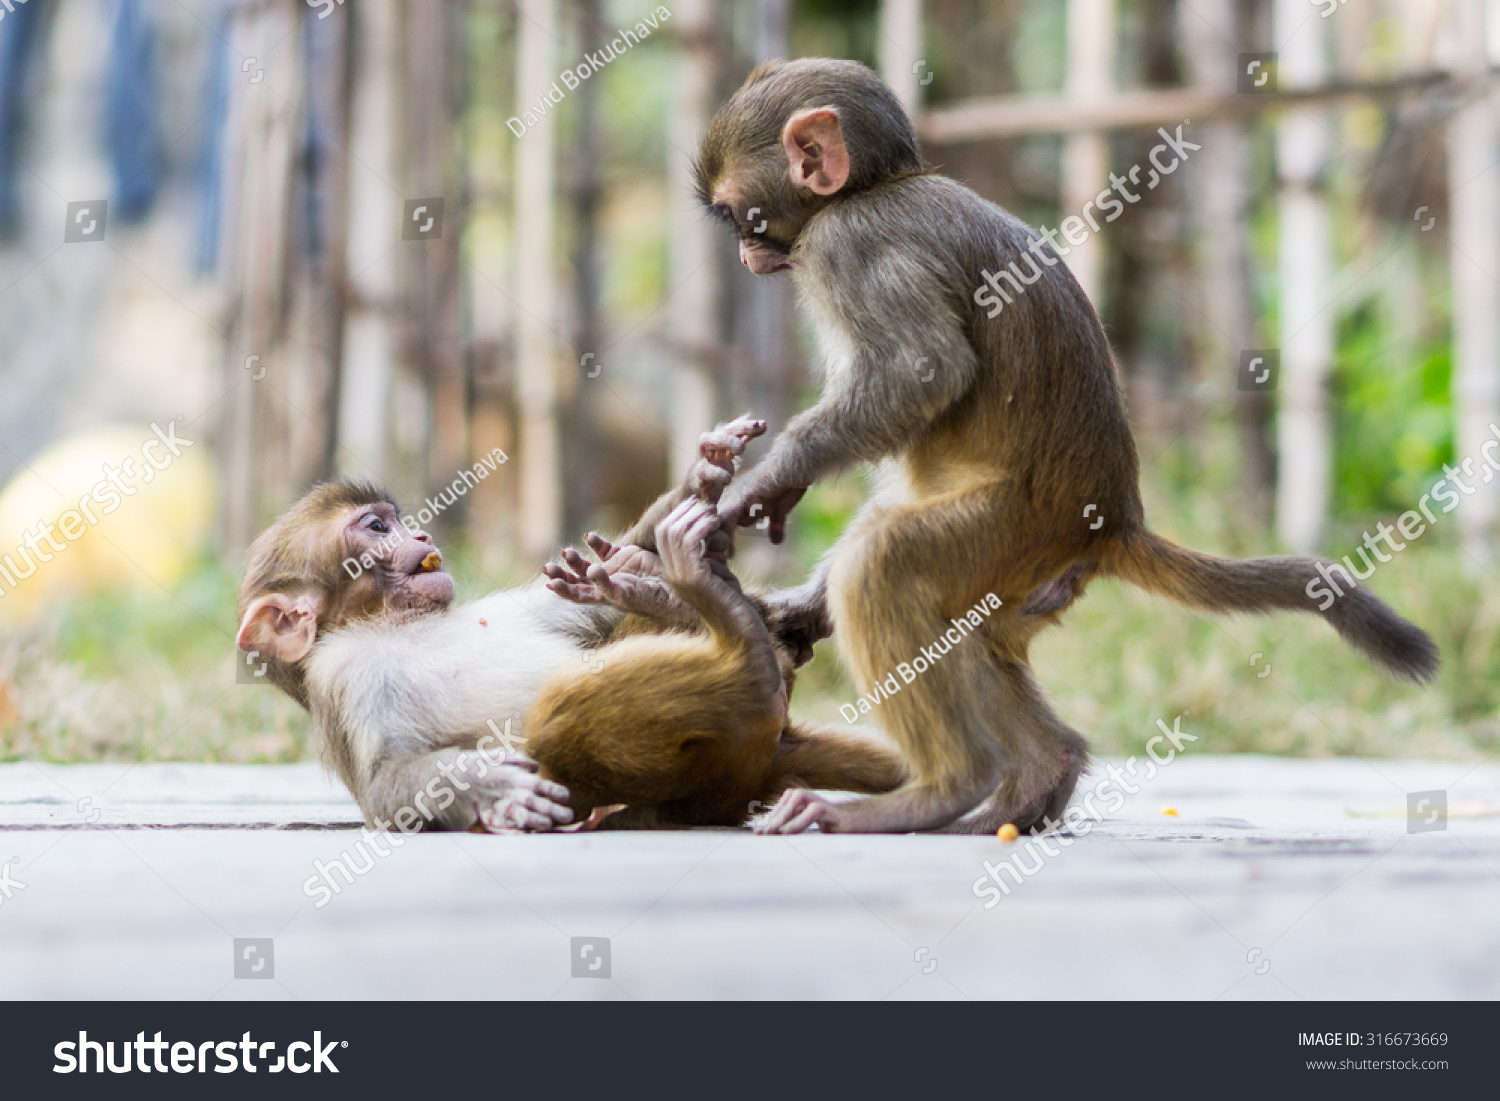 stock-photo-two-baby-macaques-playing-an